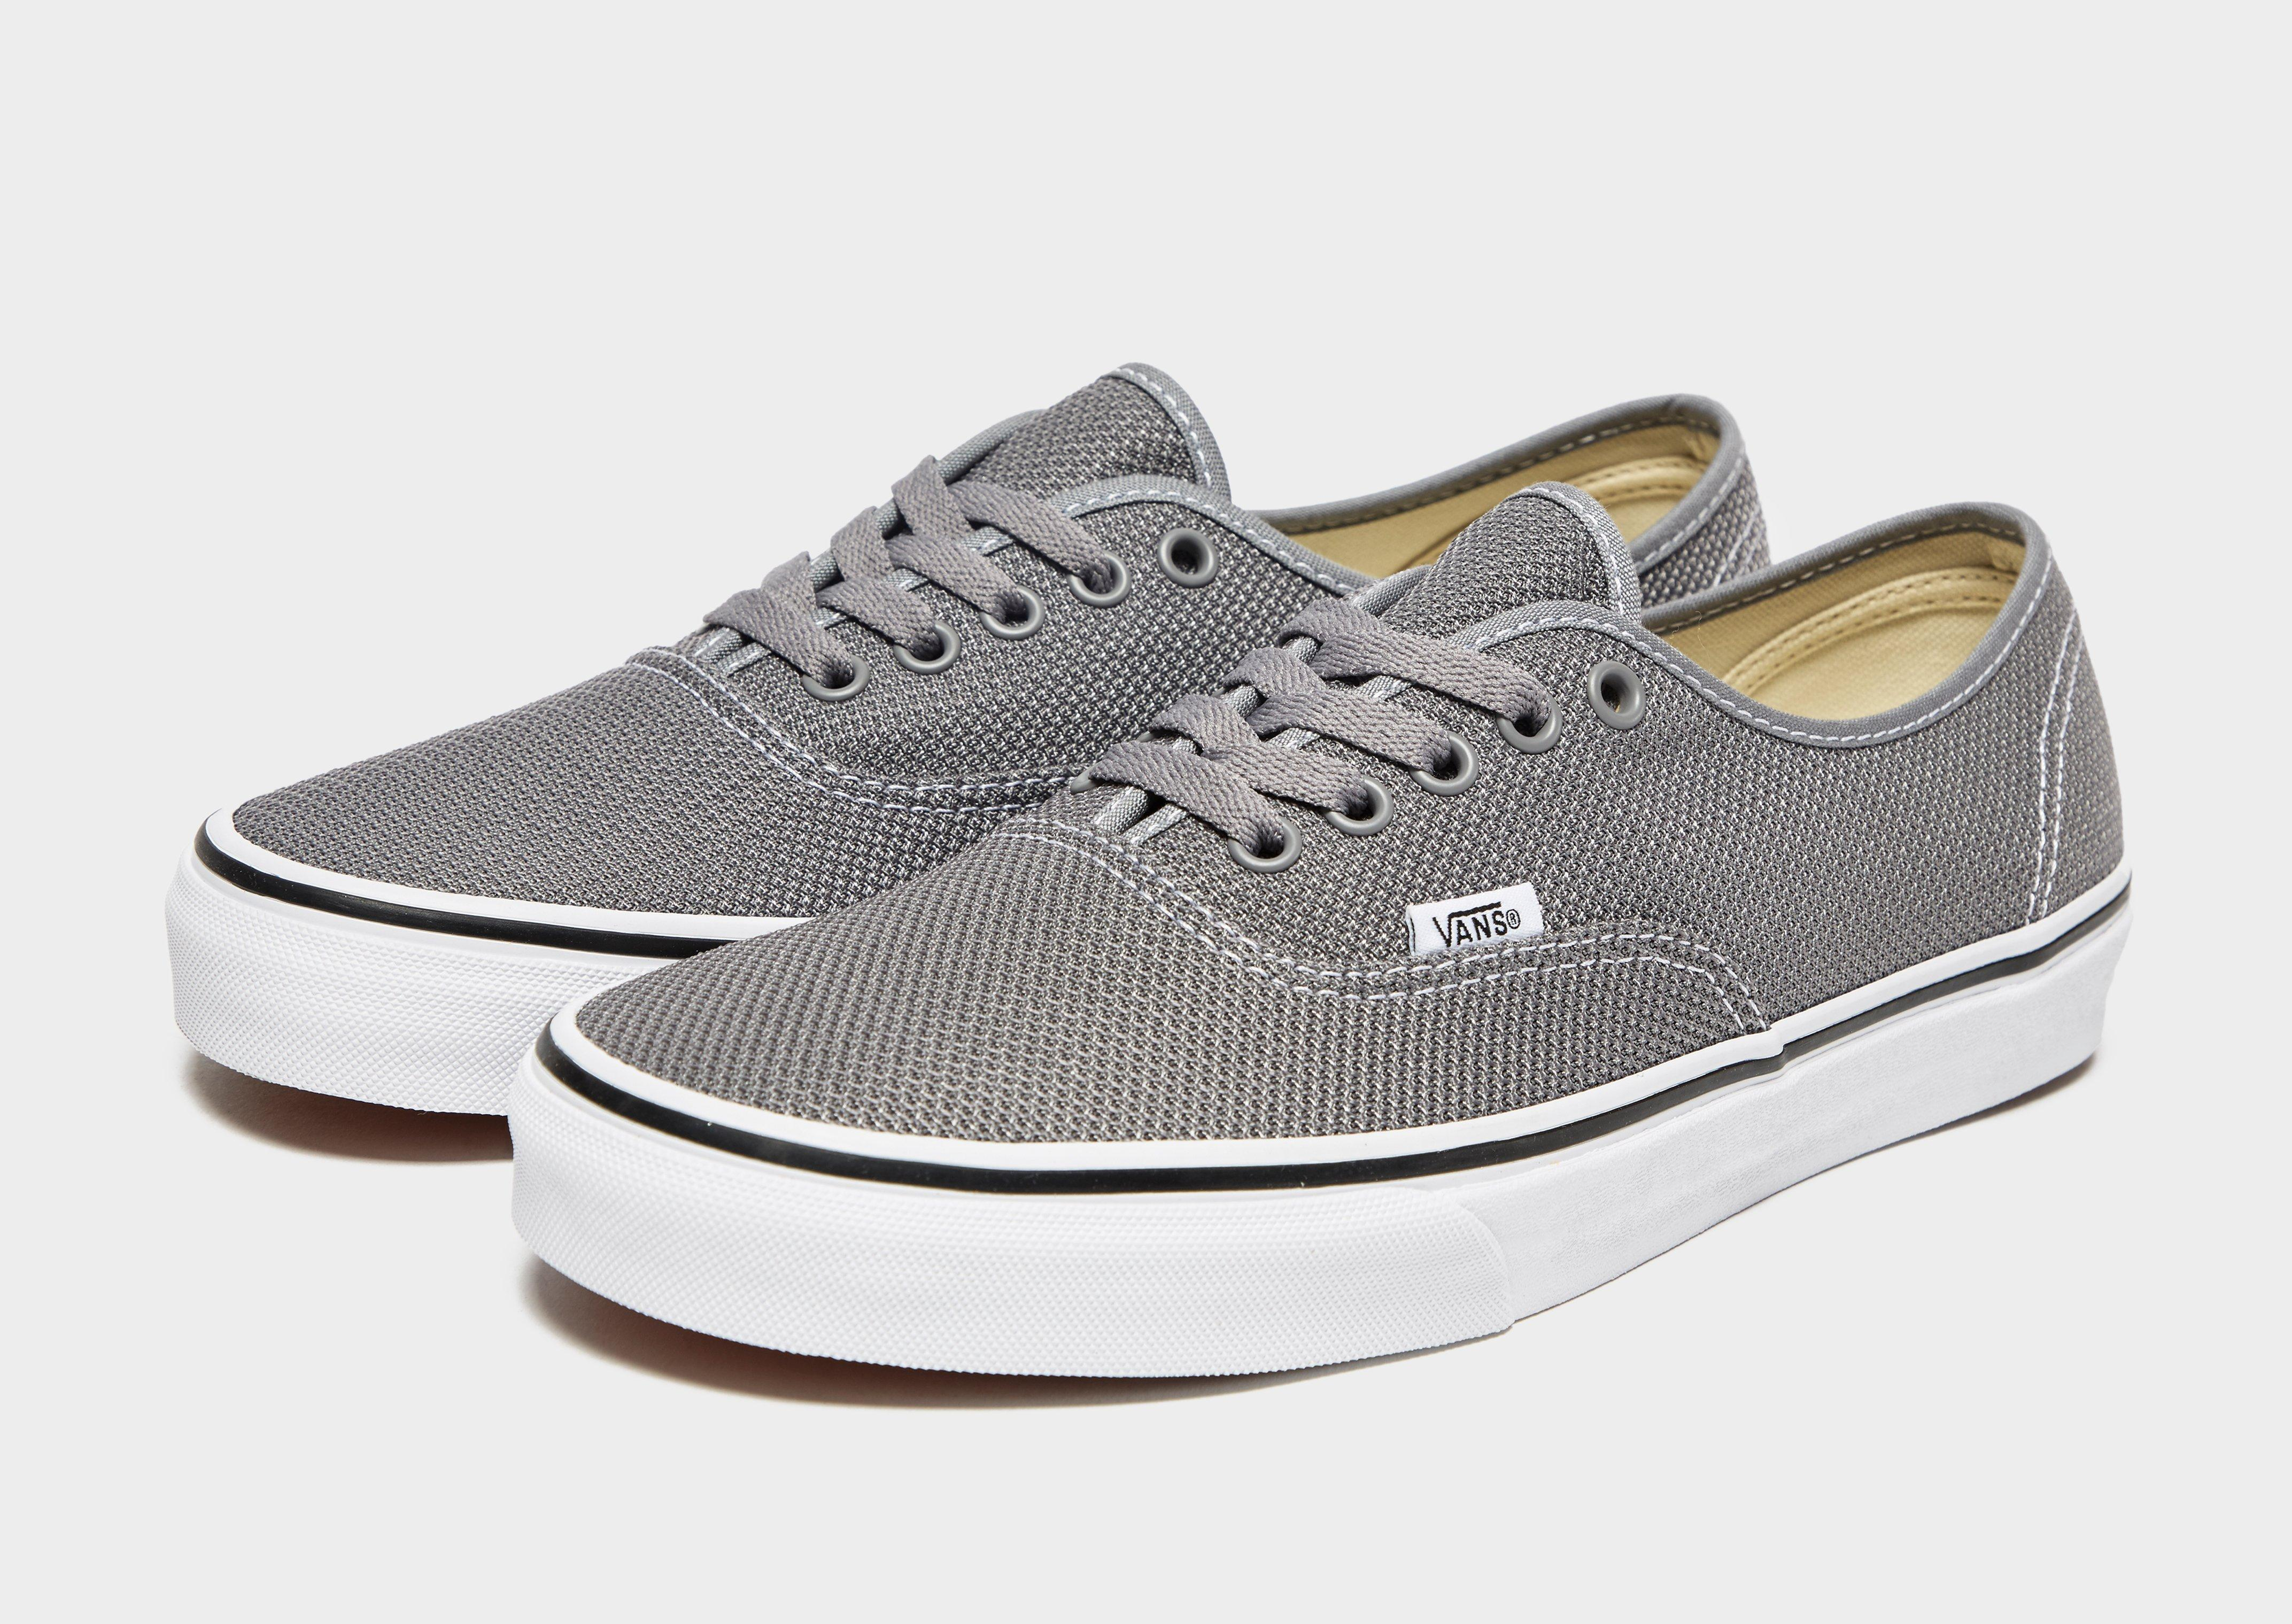 d574dbec3b Lyst - Vans Authentic in Gray for Men - Save 17.391304347826093%